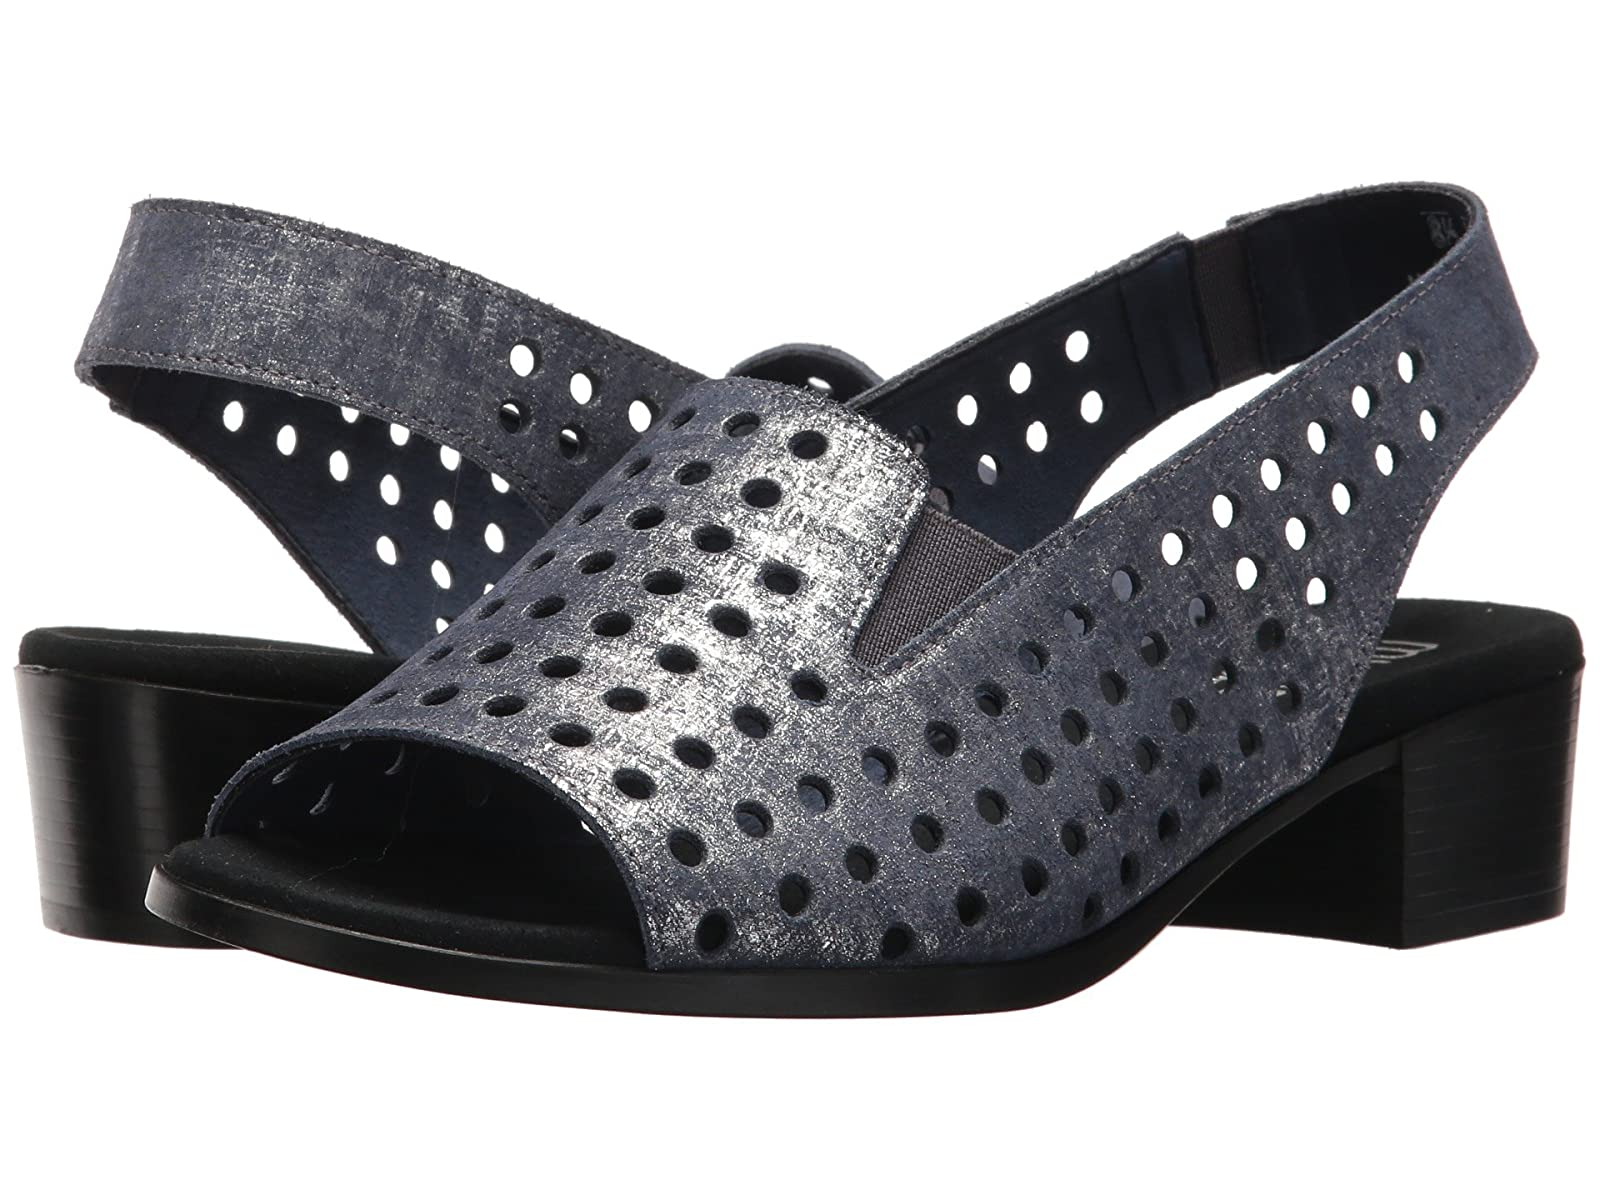 Munro MickeeAtmospheric grades have affordable shoes